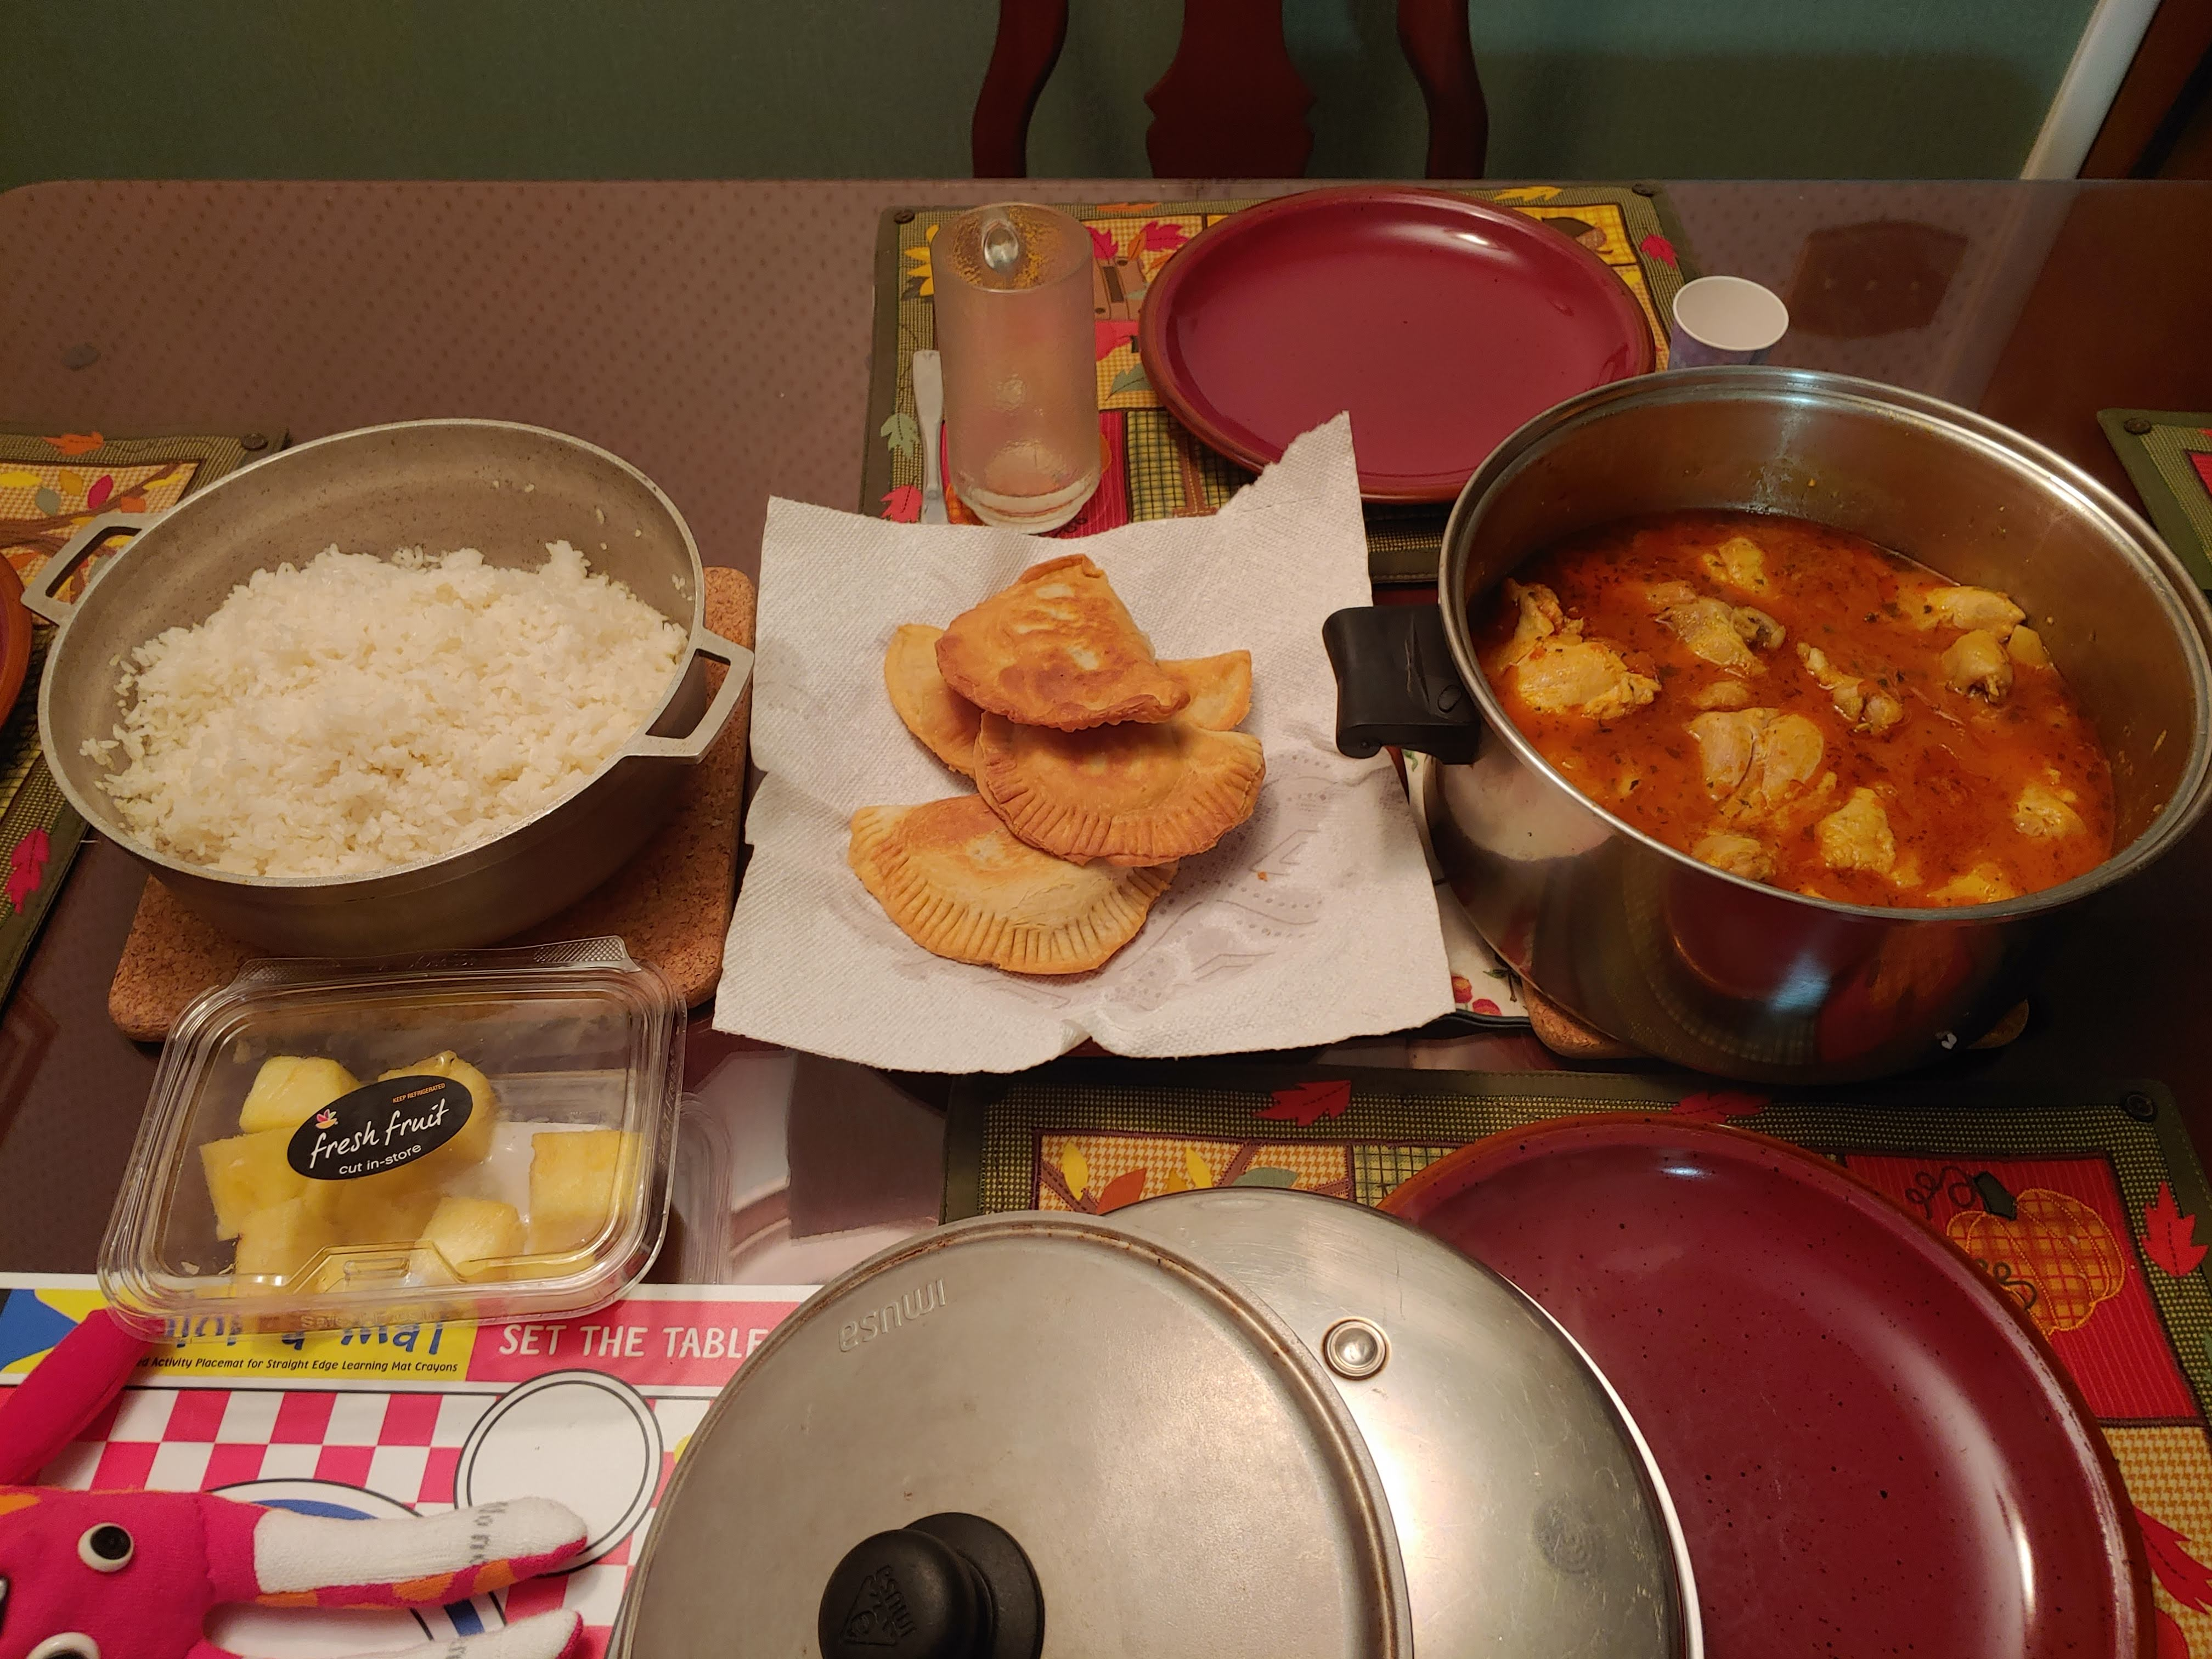 An overhead photo of a dining table that holds one large pot of white rice, four fried beef/flour patties atop a paper towel, a stainless steel pot of chicken in a red sauce, and a plastic container of pineapple. Dark red ceramic plates sit atop a fall/harvest scene on cloth placemats.